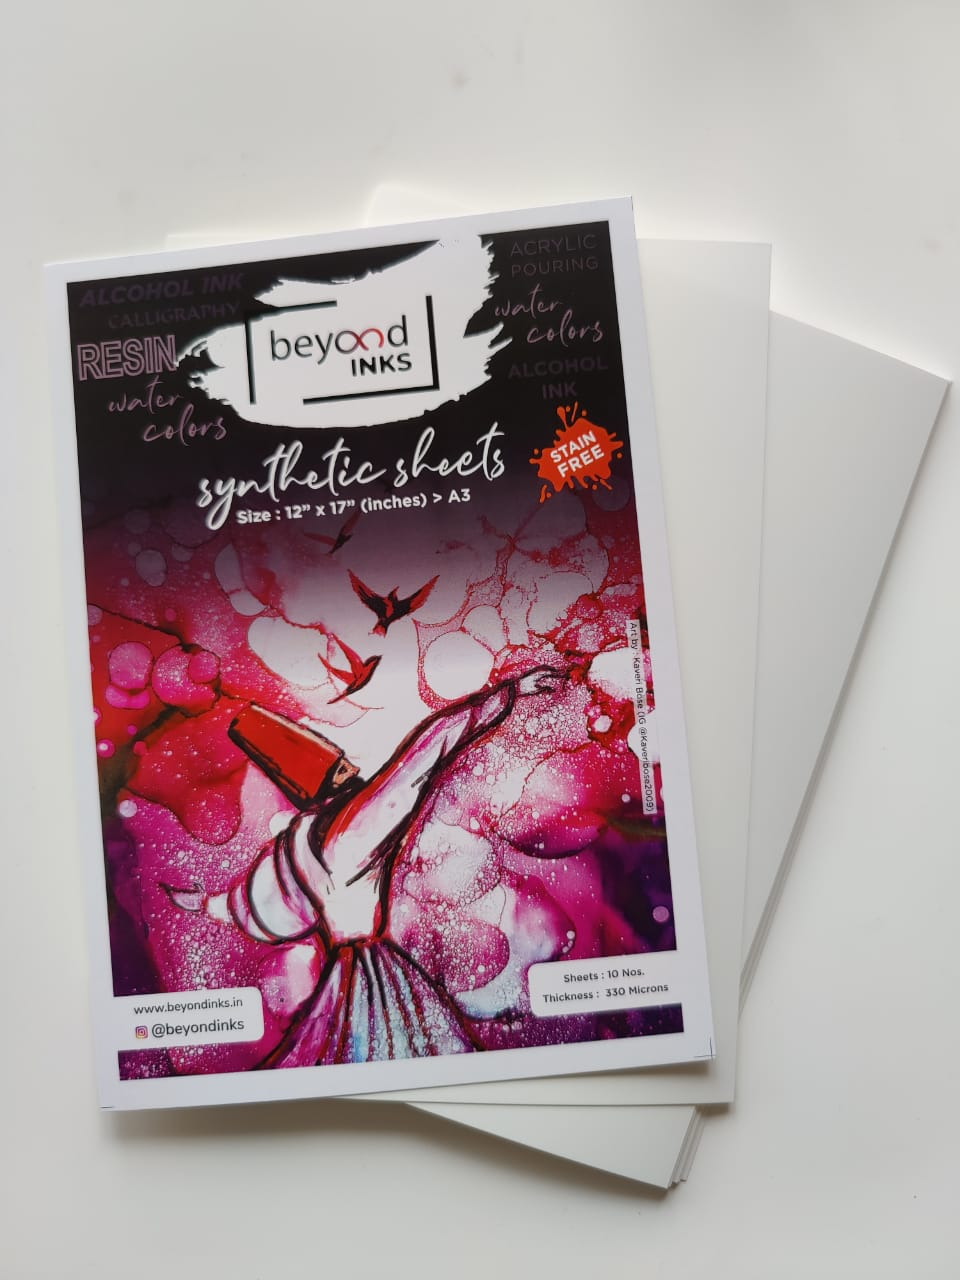 BeyondInks Synthetic Paper - A3 - 10 Sheets (330 microns)